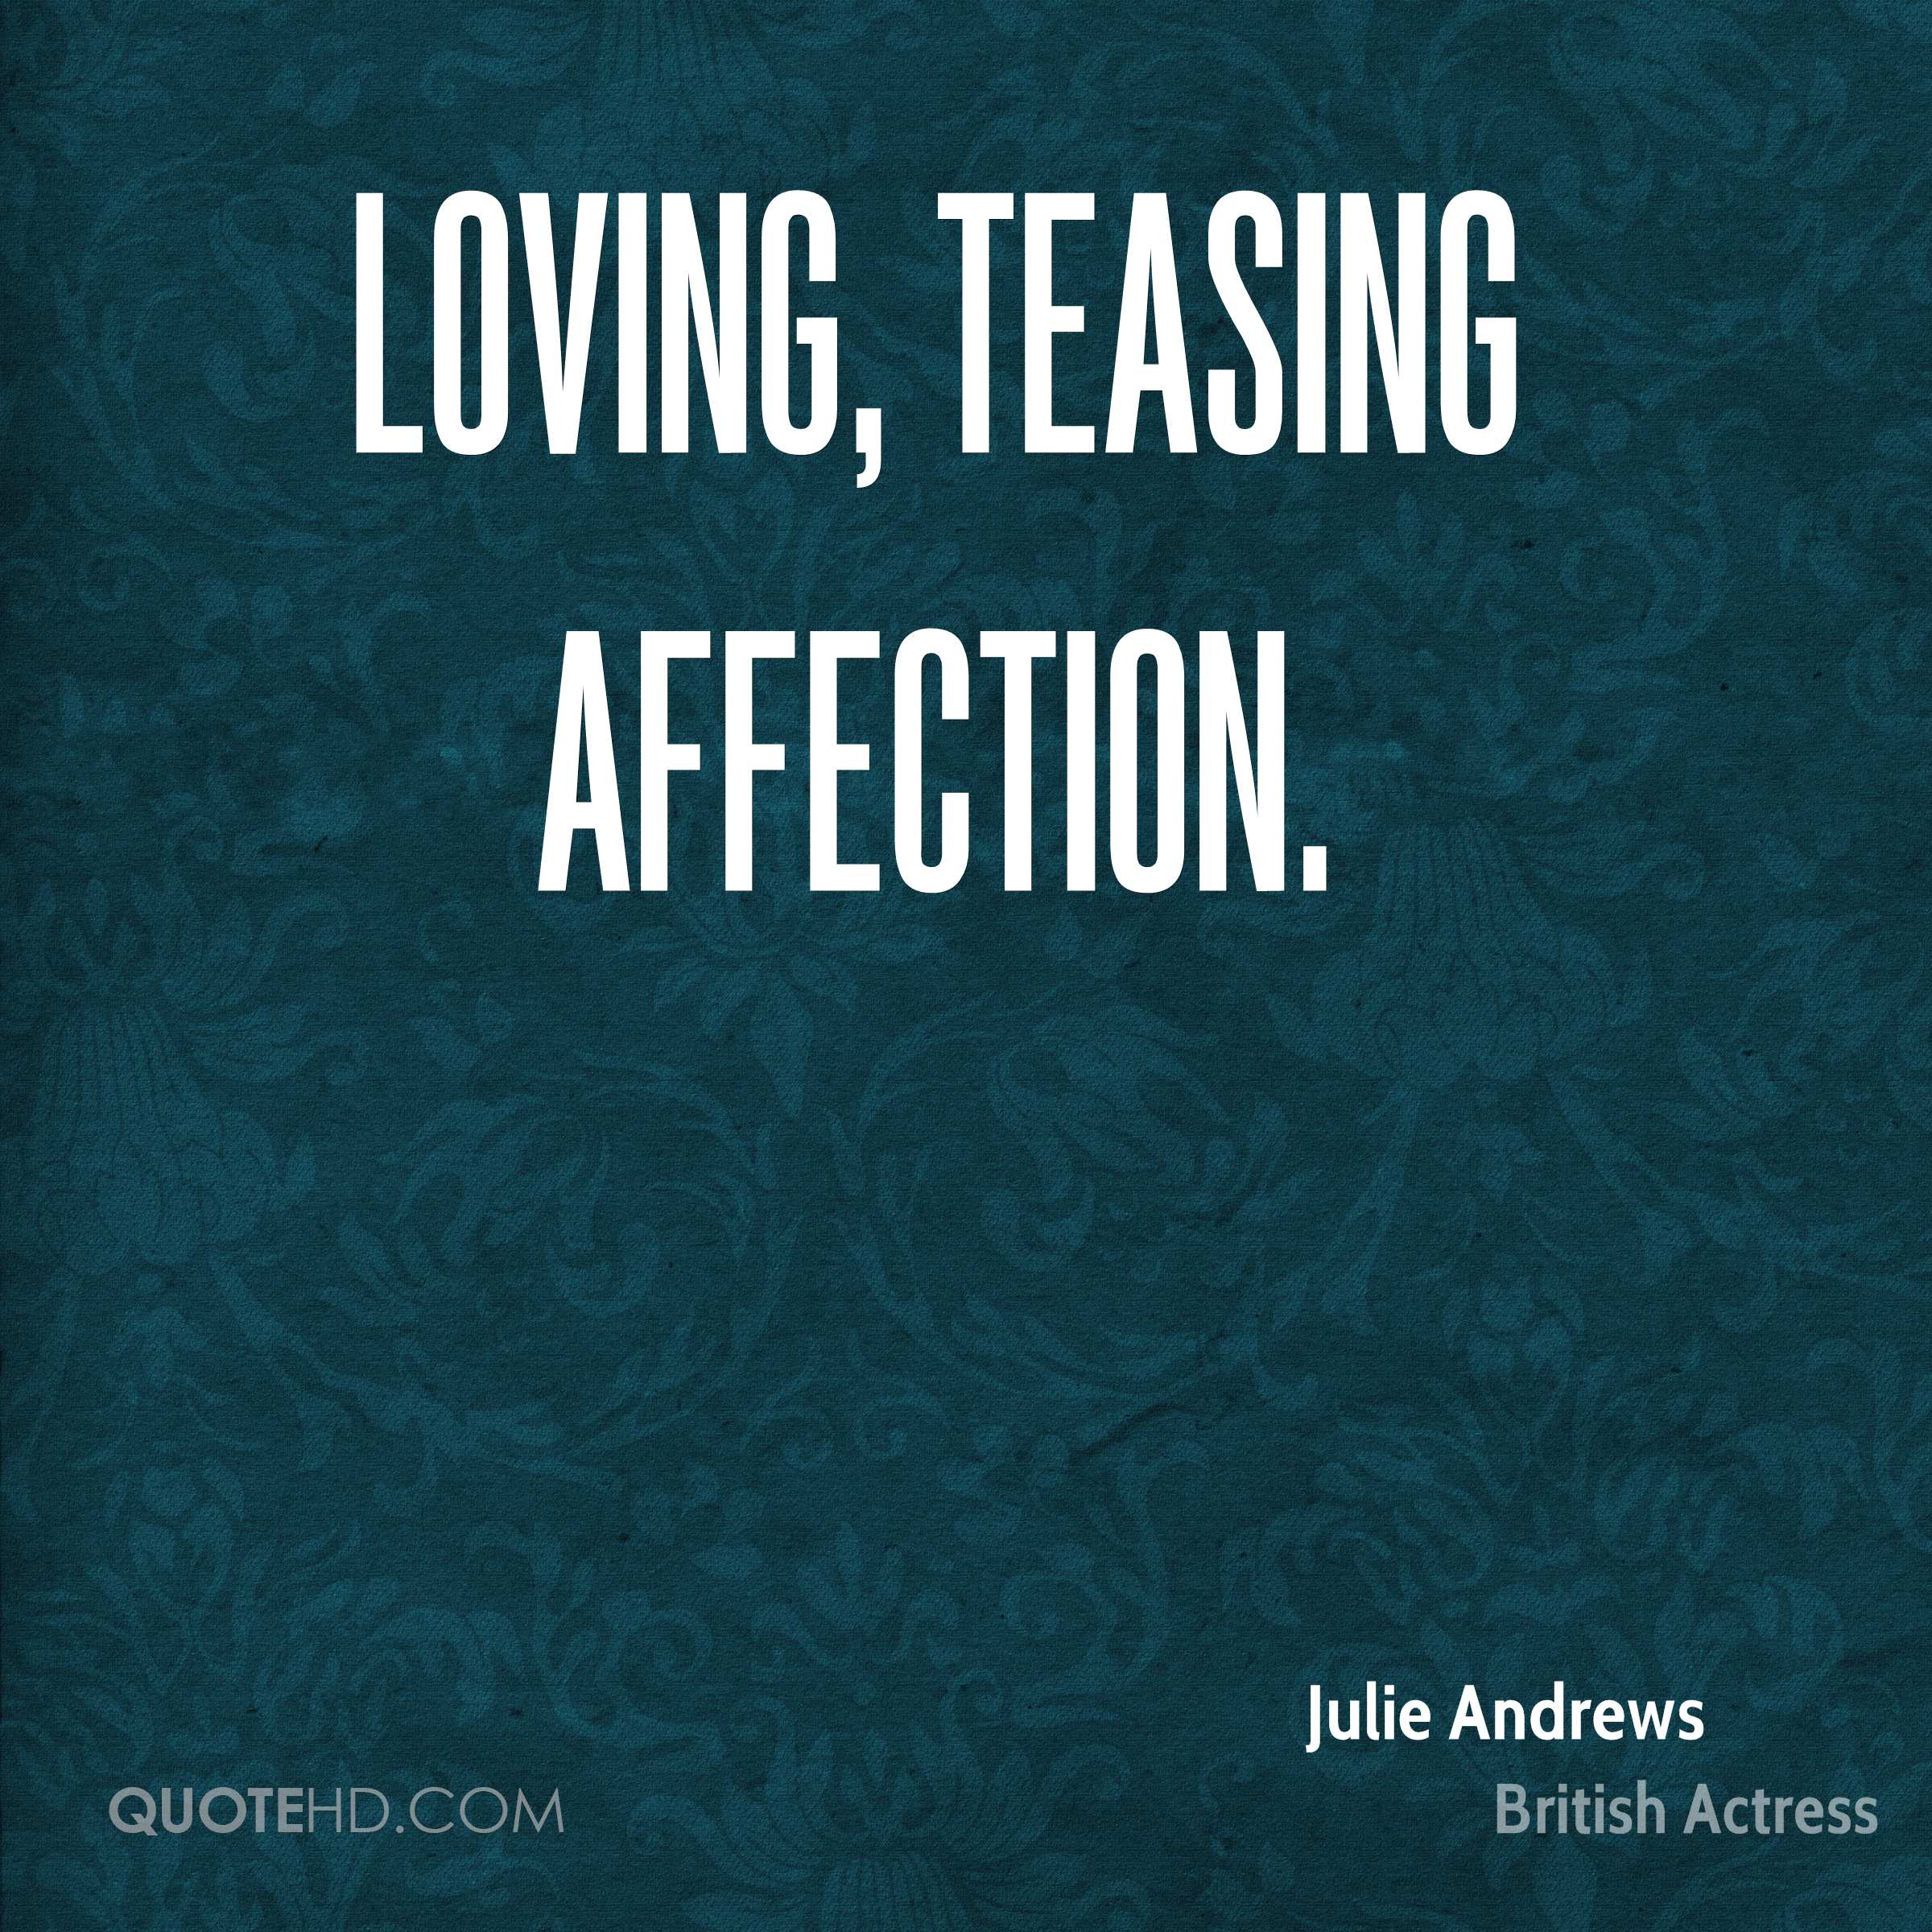 Quotes About Affection Julie Andrews Quotes  Quotehd